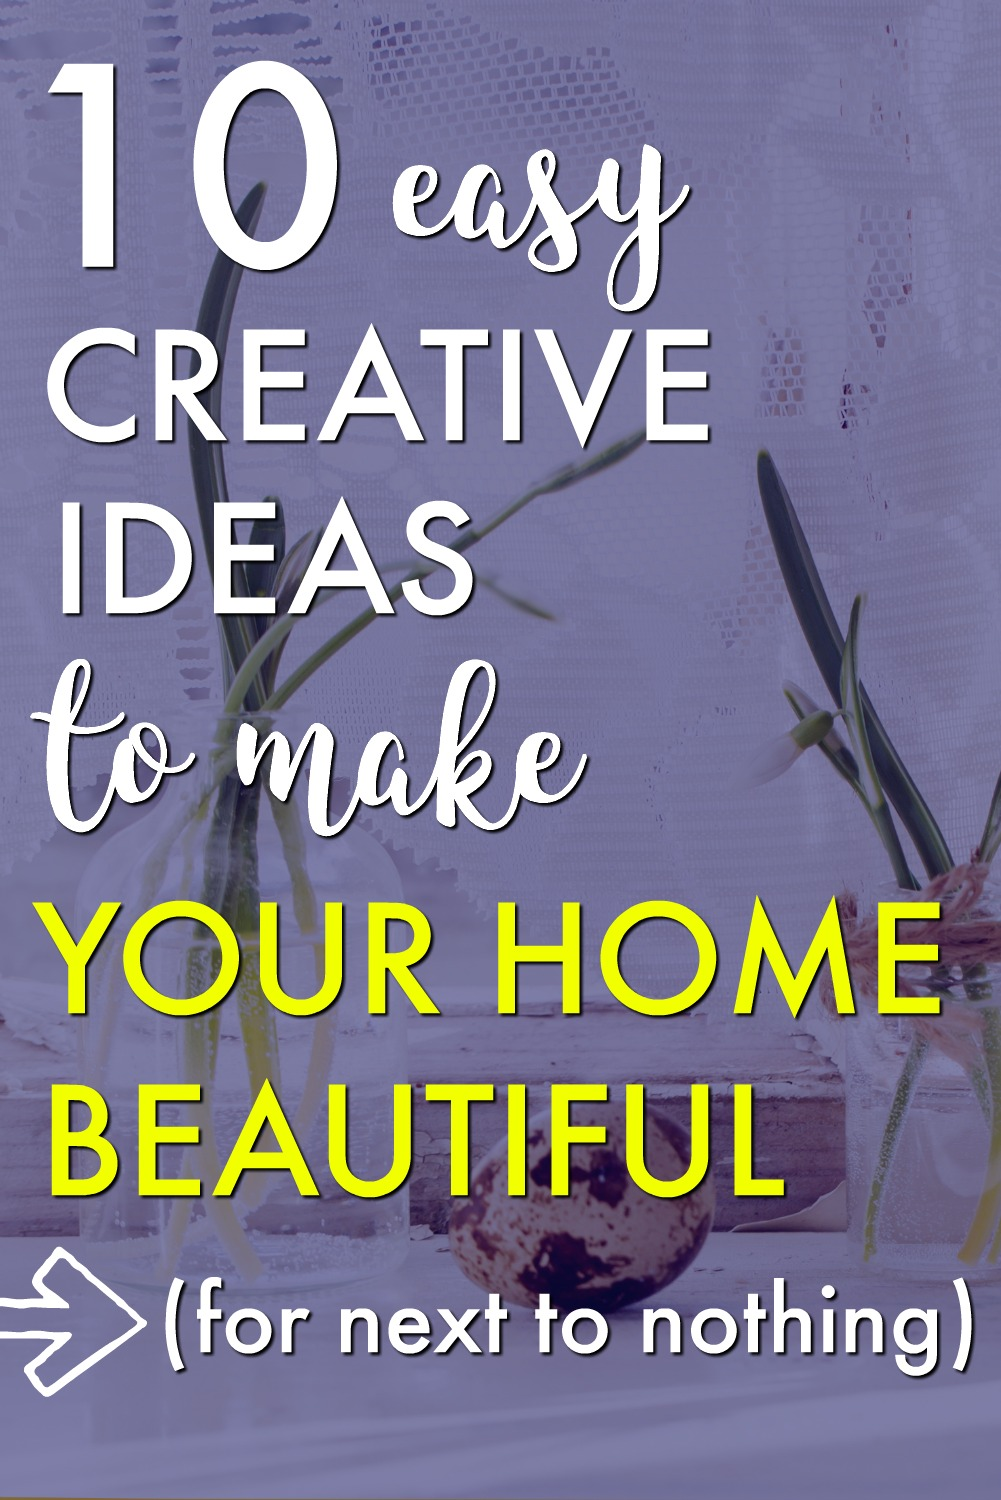 10 cheap decorating ideas to make your home beautiful even when you decorate on a budget home decor for less save money frugal living tips fandeluxe Choice Image